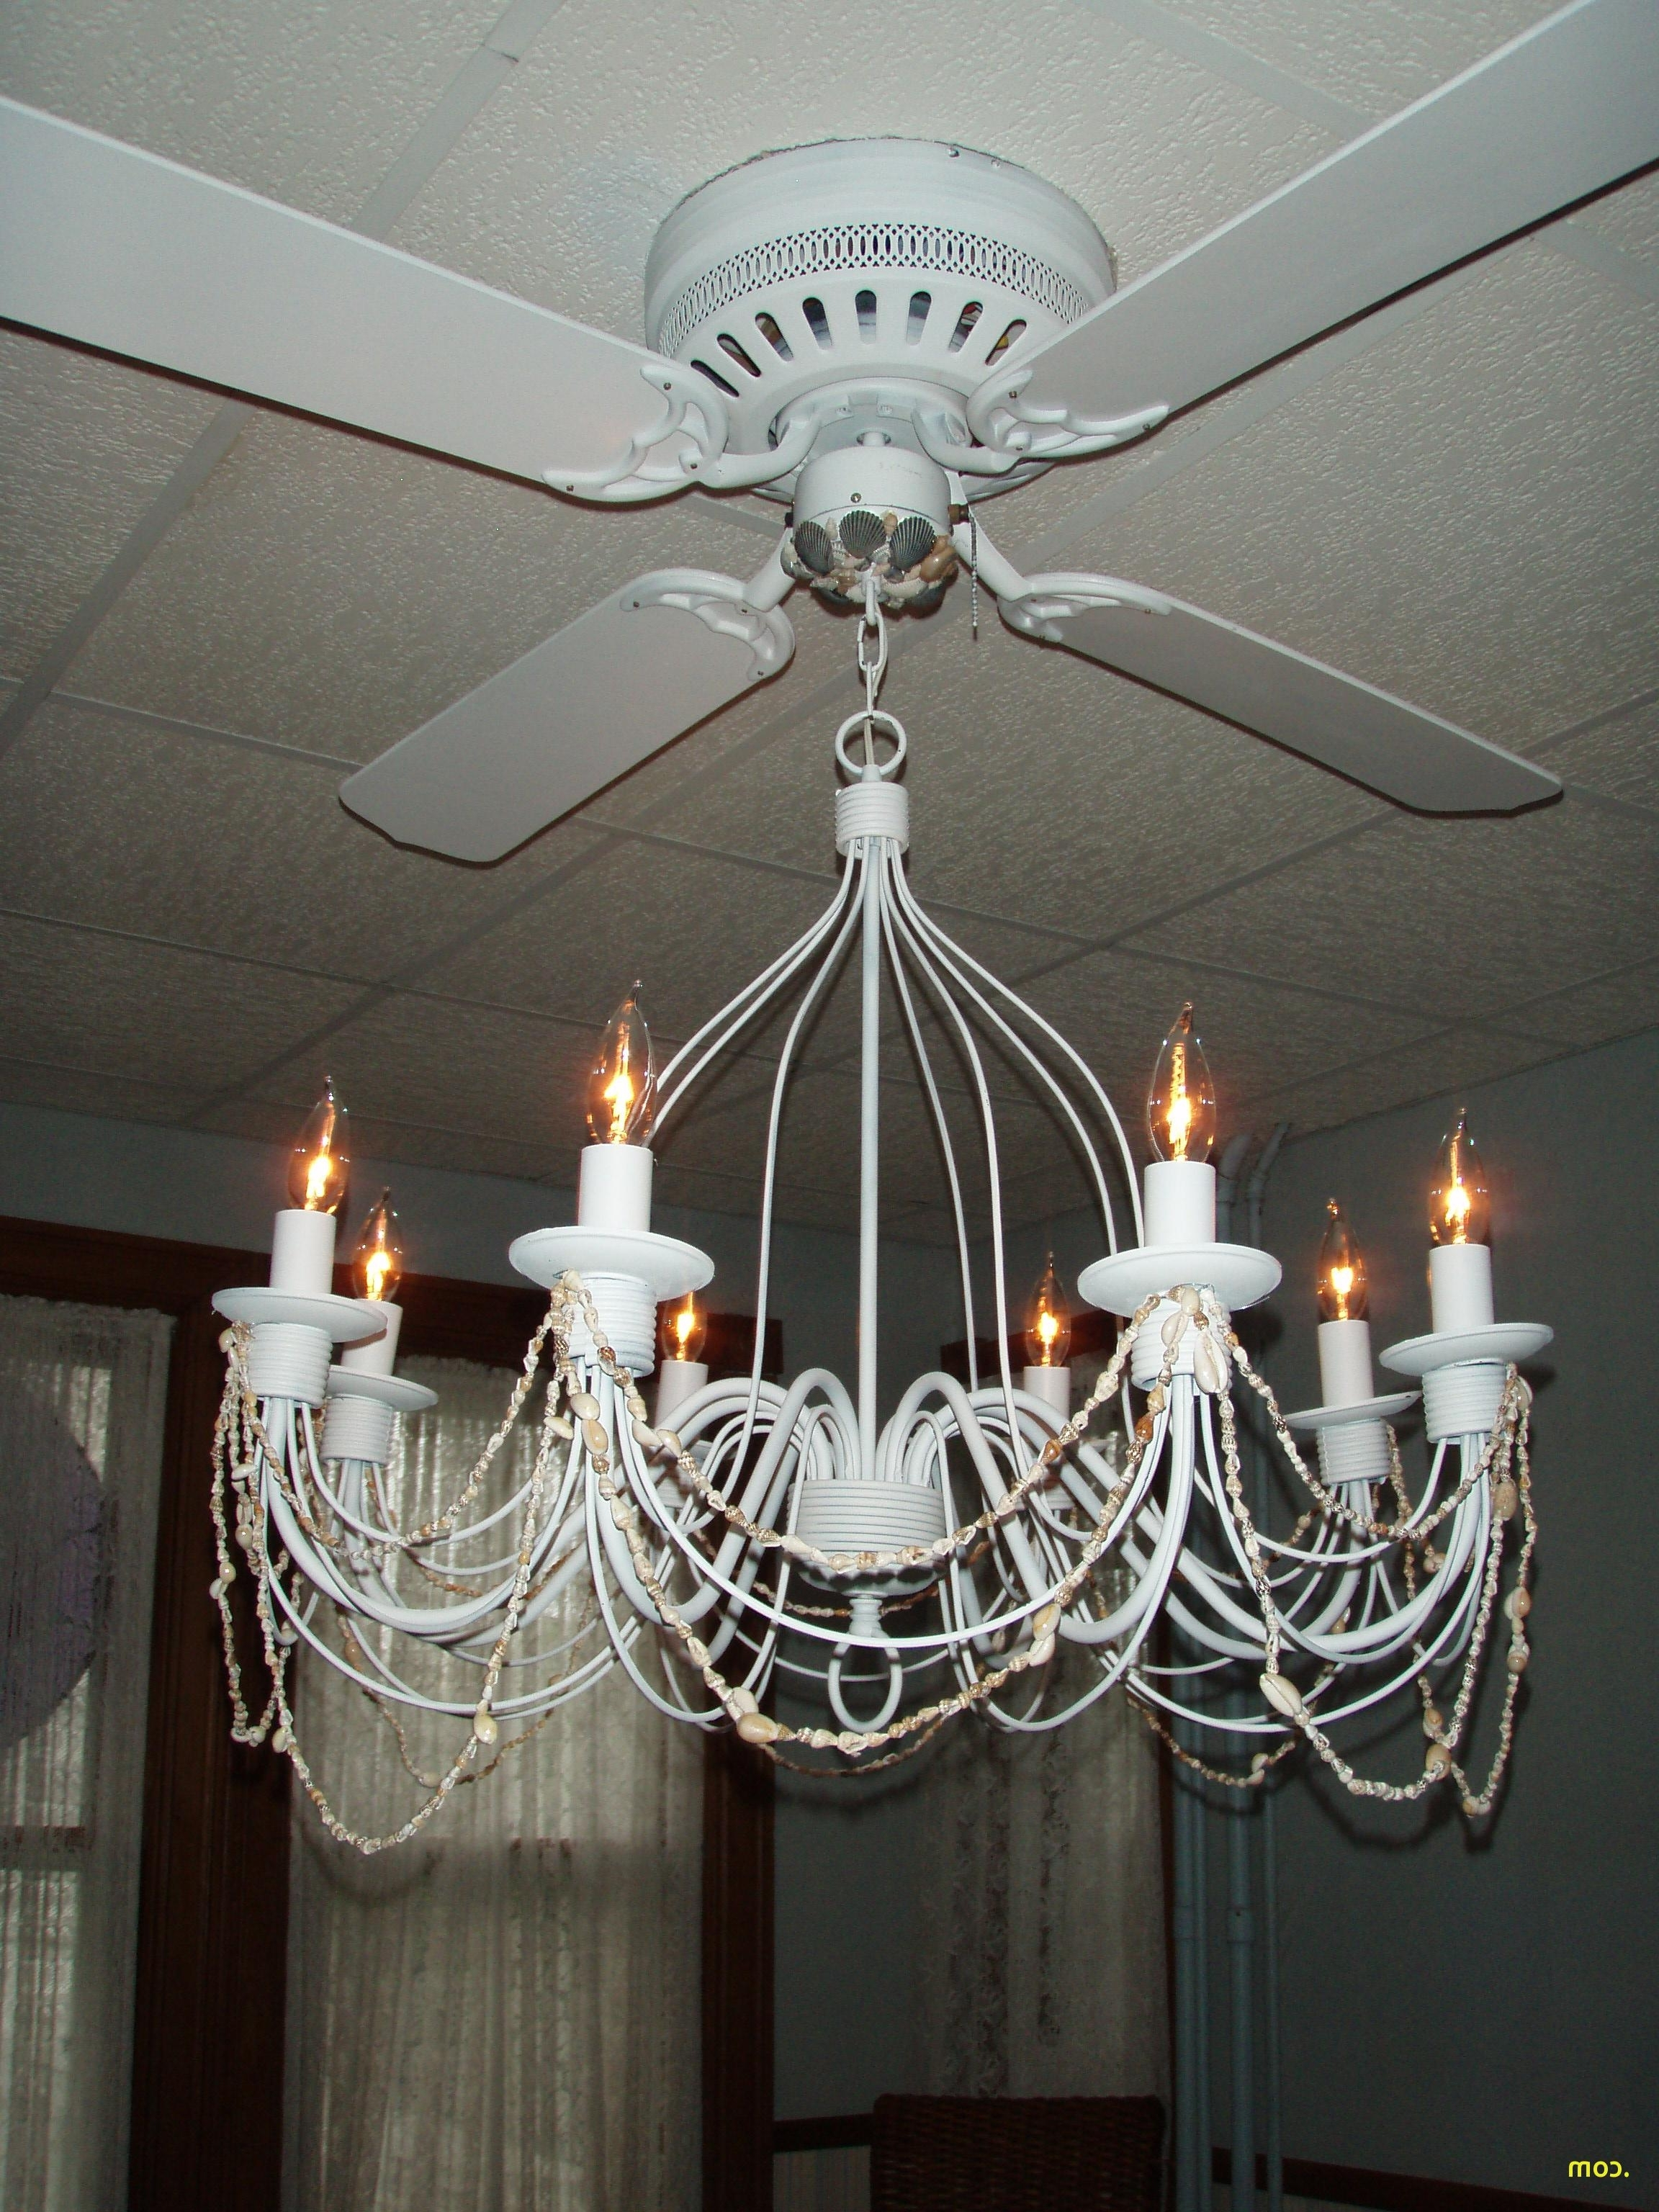 Furniture : Candelier Ceiling Fan Elegant Chandelier Light Fixtures Within Well Known Chandelier Light Fixture For Ceiling Fan (View 13 of 20)